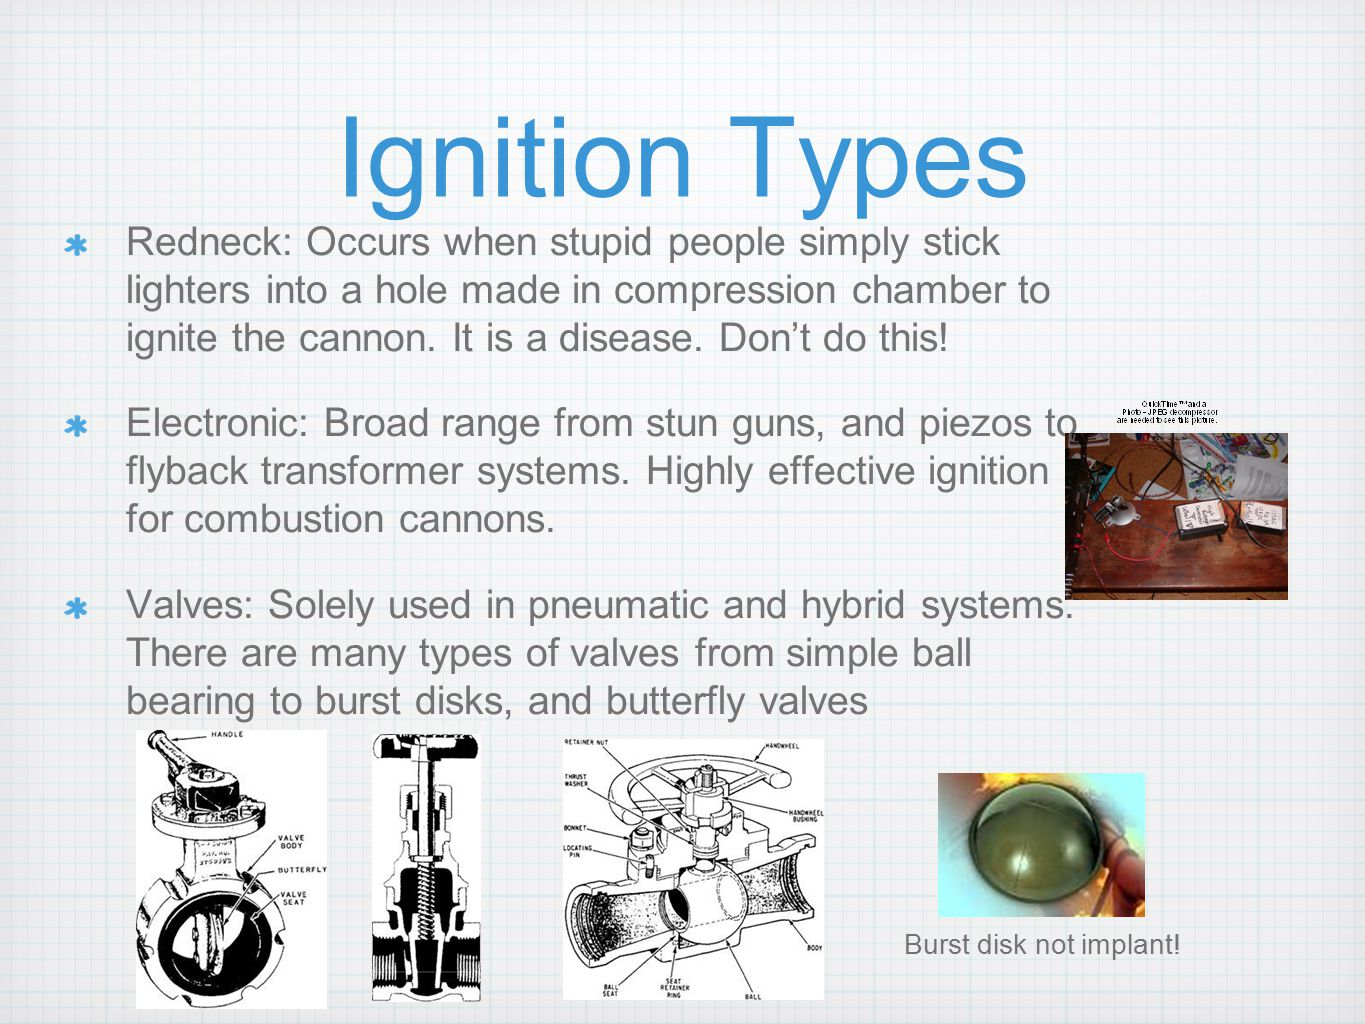 Ignition Types Redneck: Occurs when stupid people simply stick lighters into a hole made in compression chamber to ignite the cannon. It is a disease.